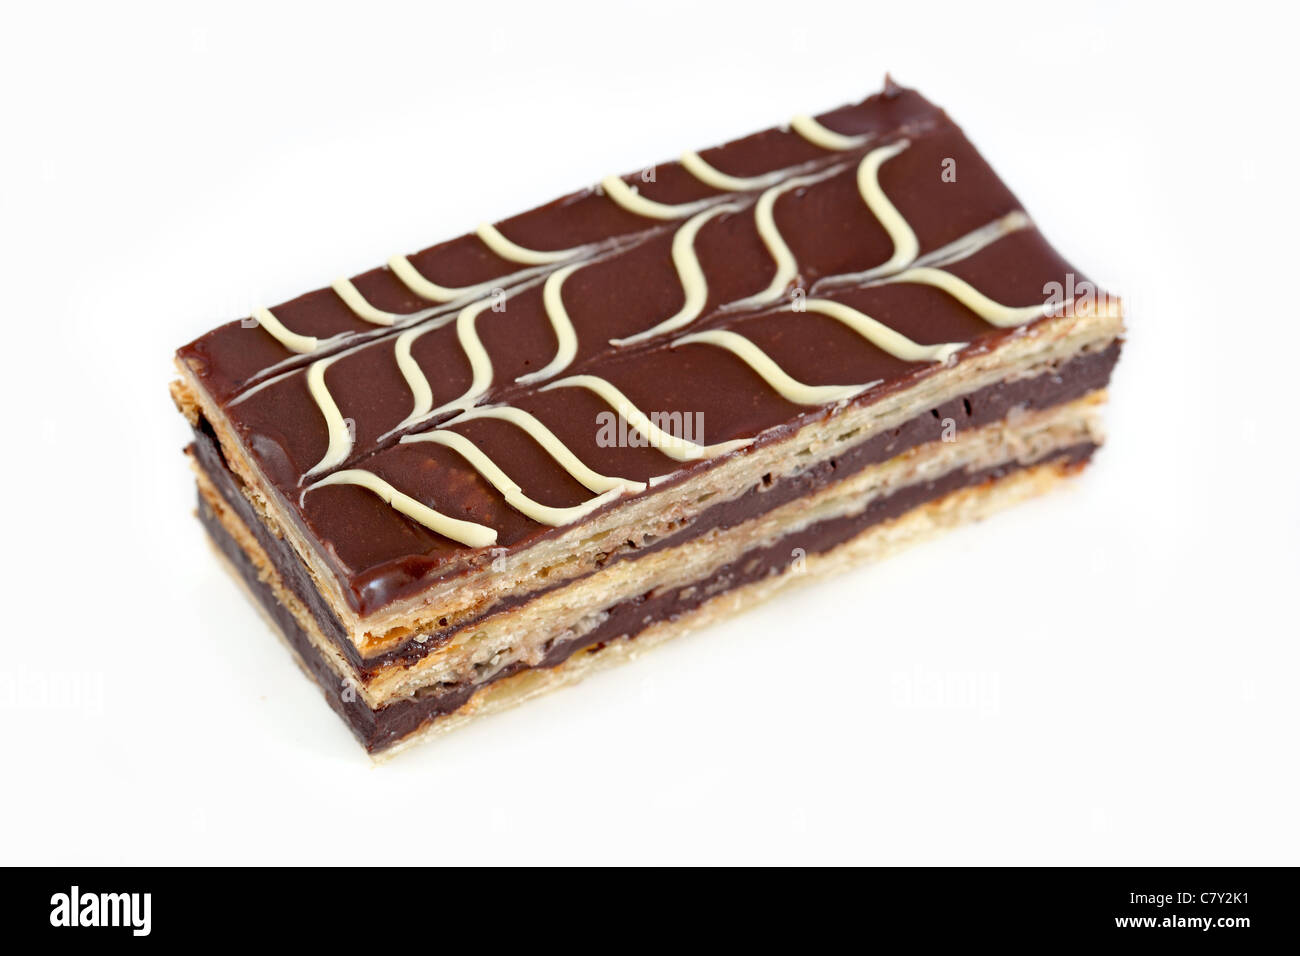 Mille-feuille au chocolat Chocolate layer cake - Stock Image